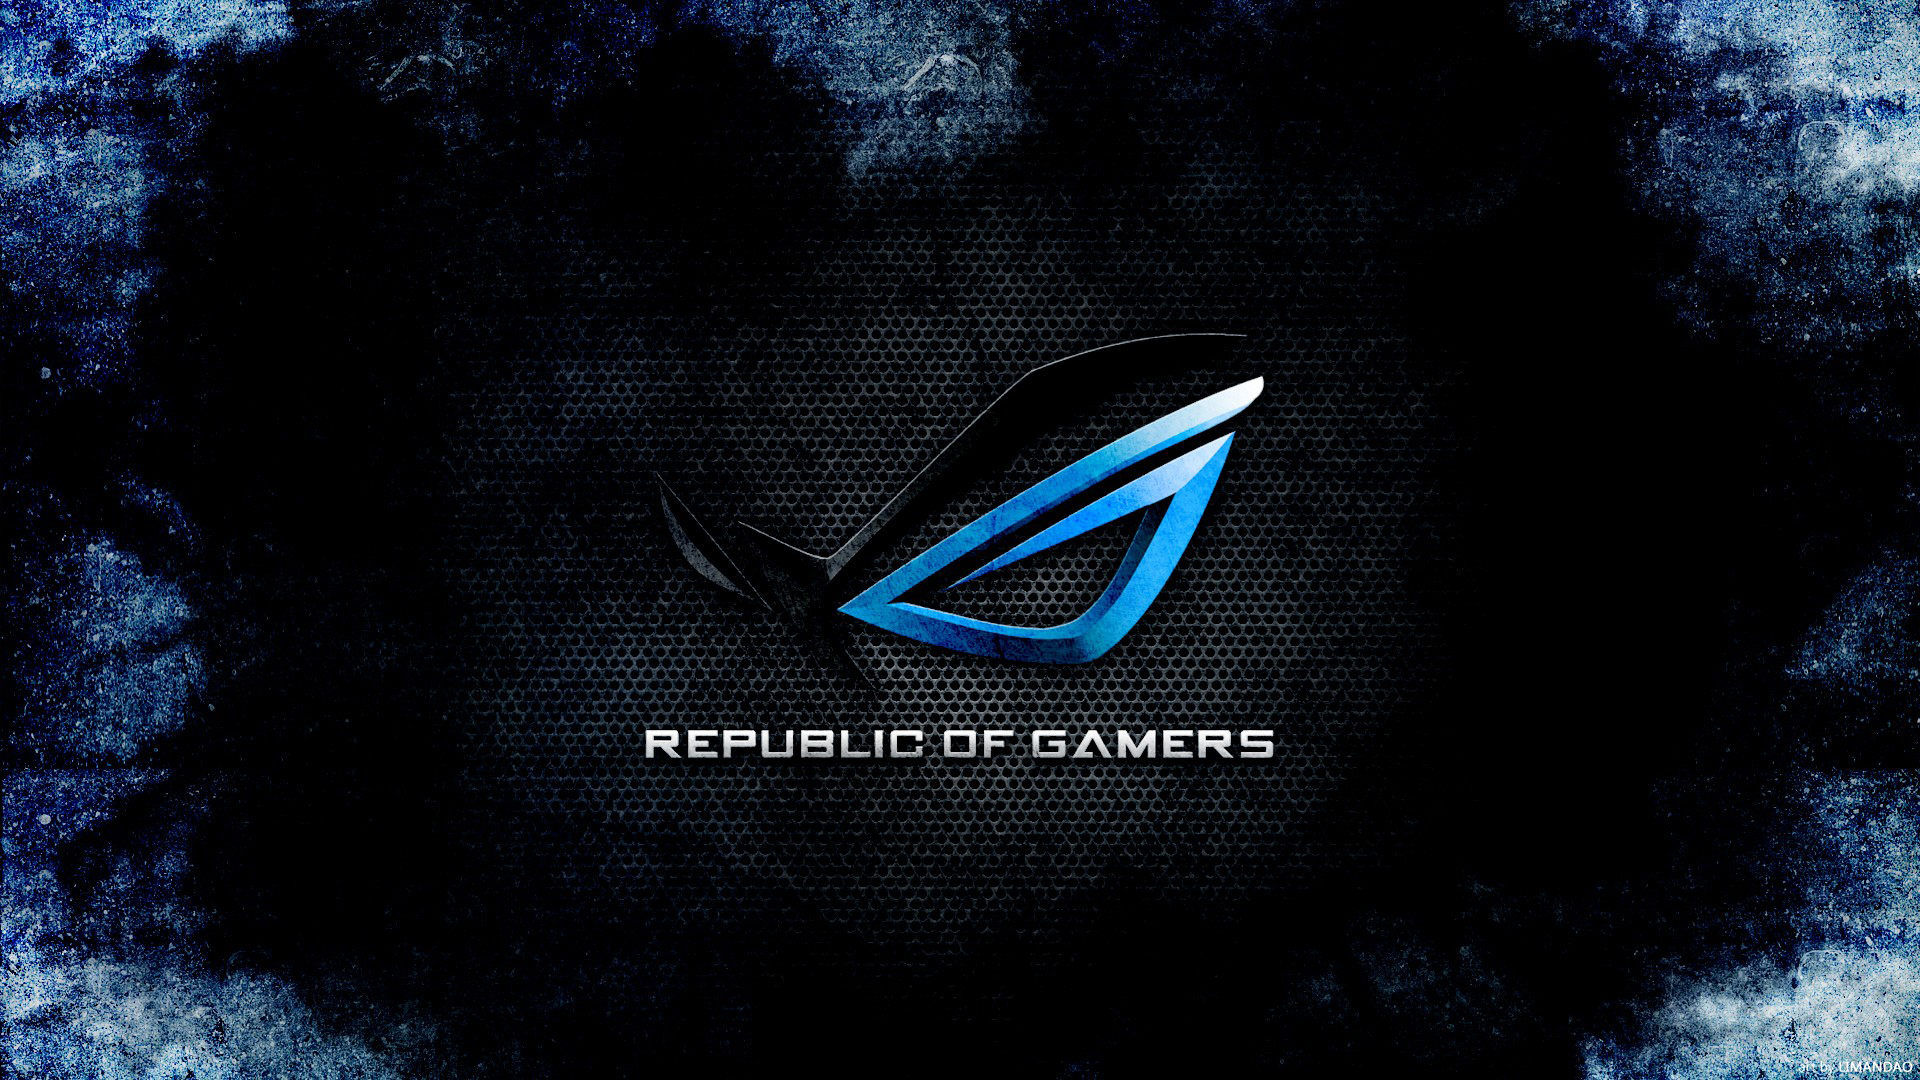 Gaming Wallpaper Hd